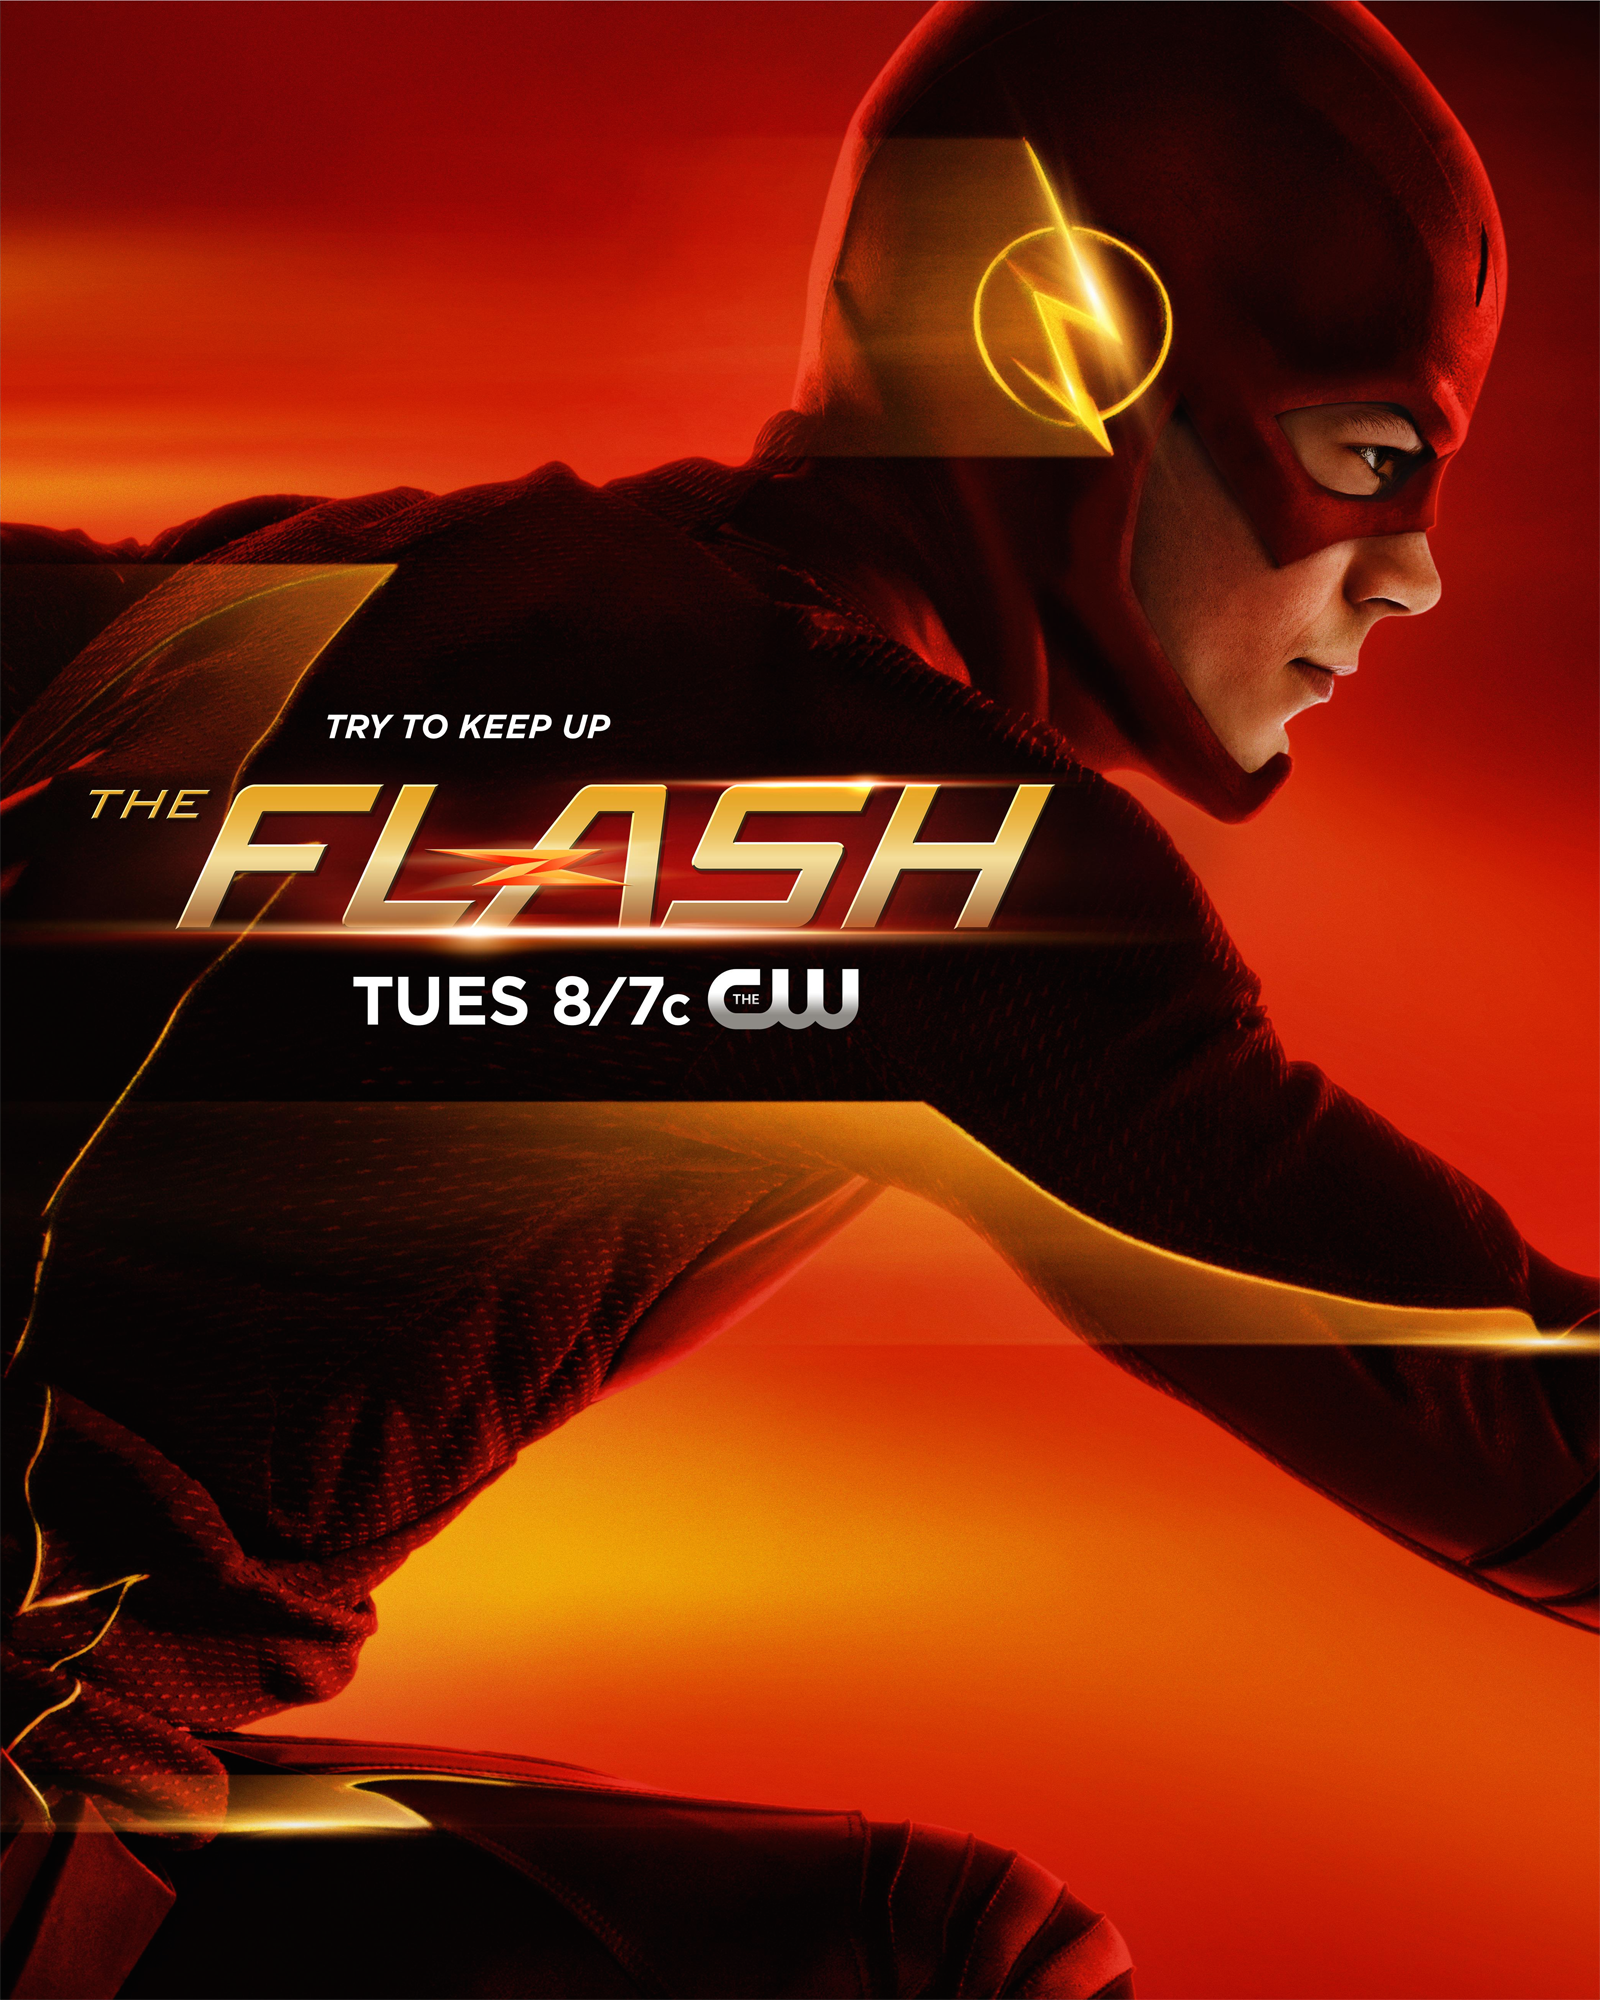 Arquivo:The Flash promo poster - Try to keep up.png